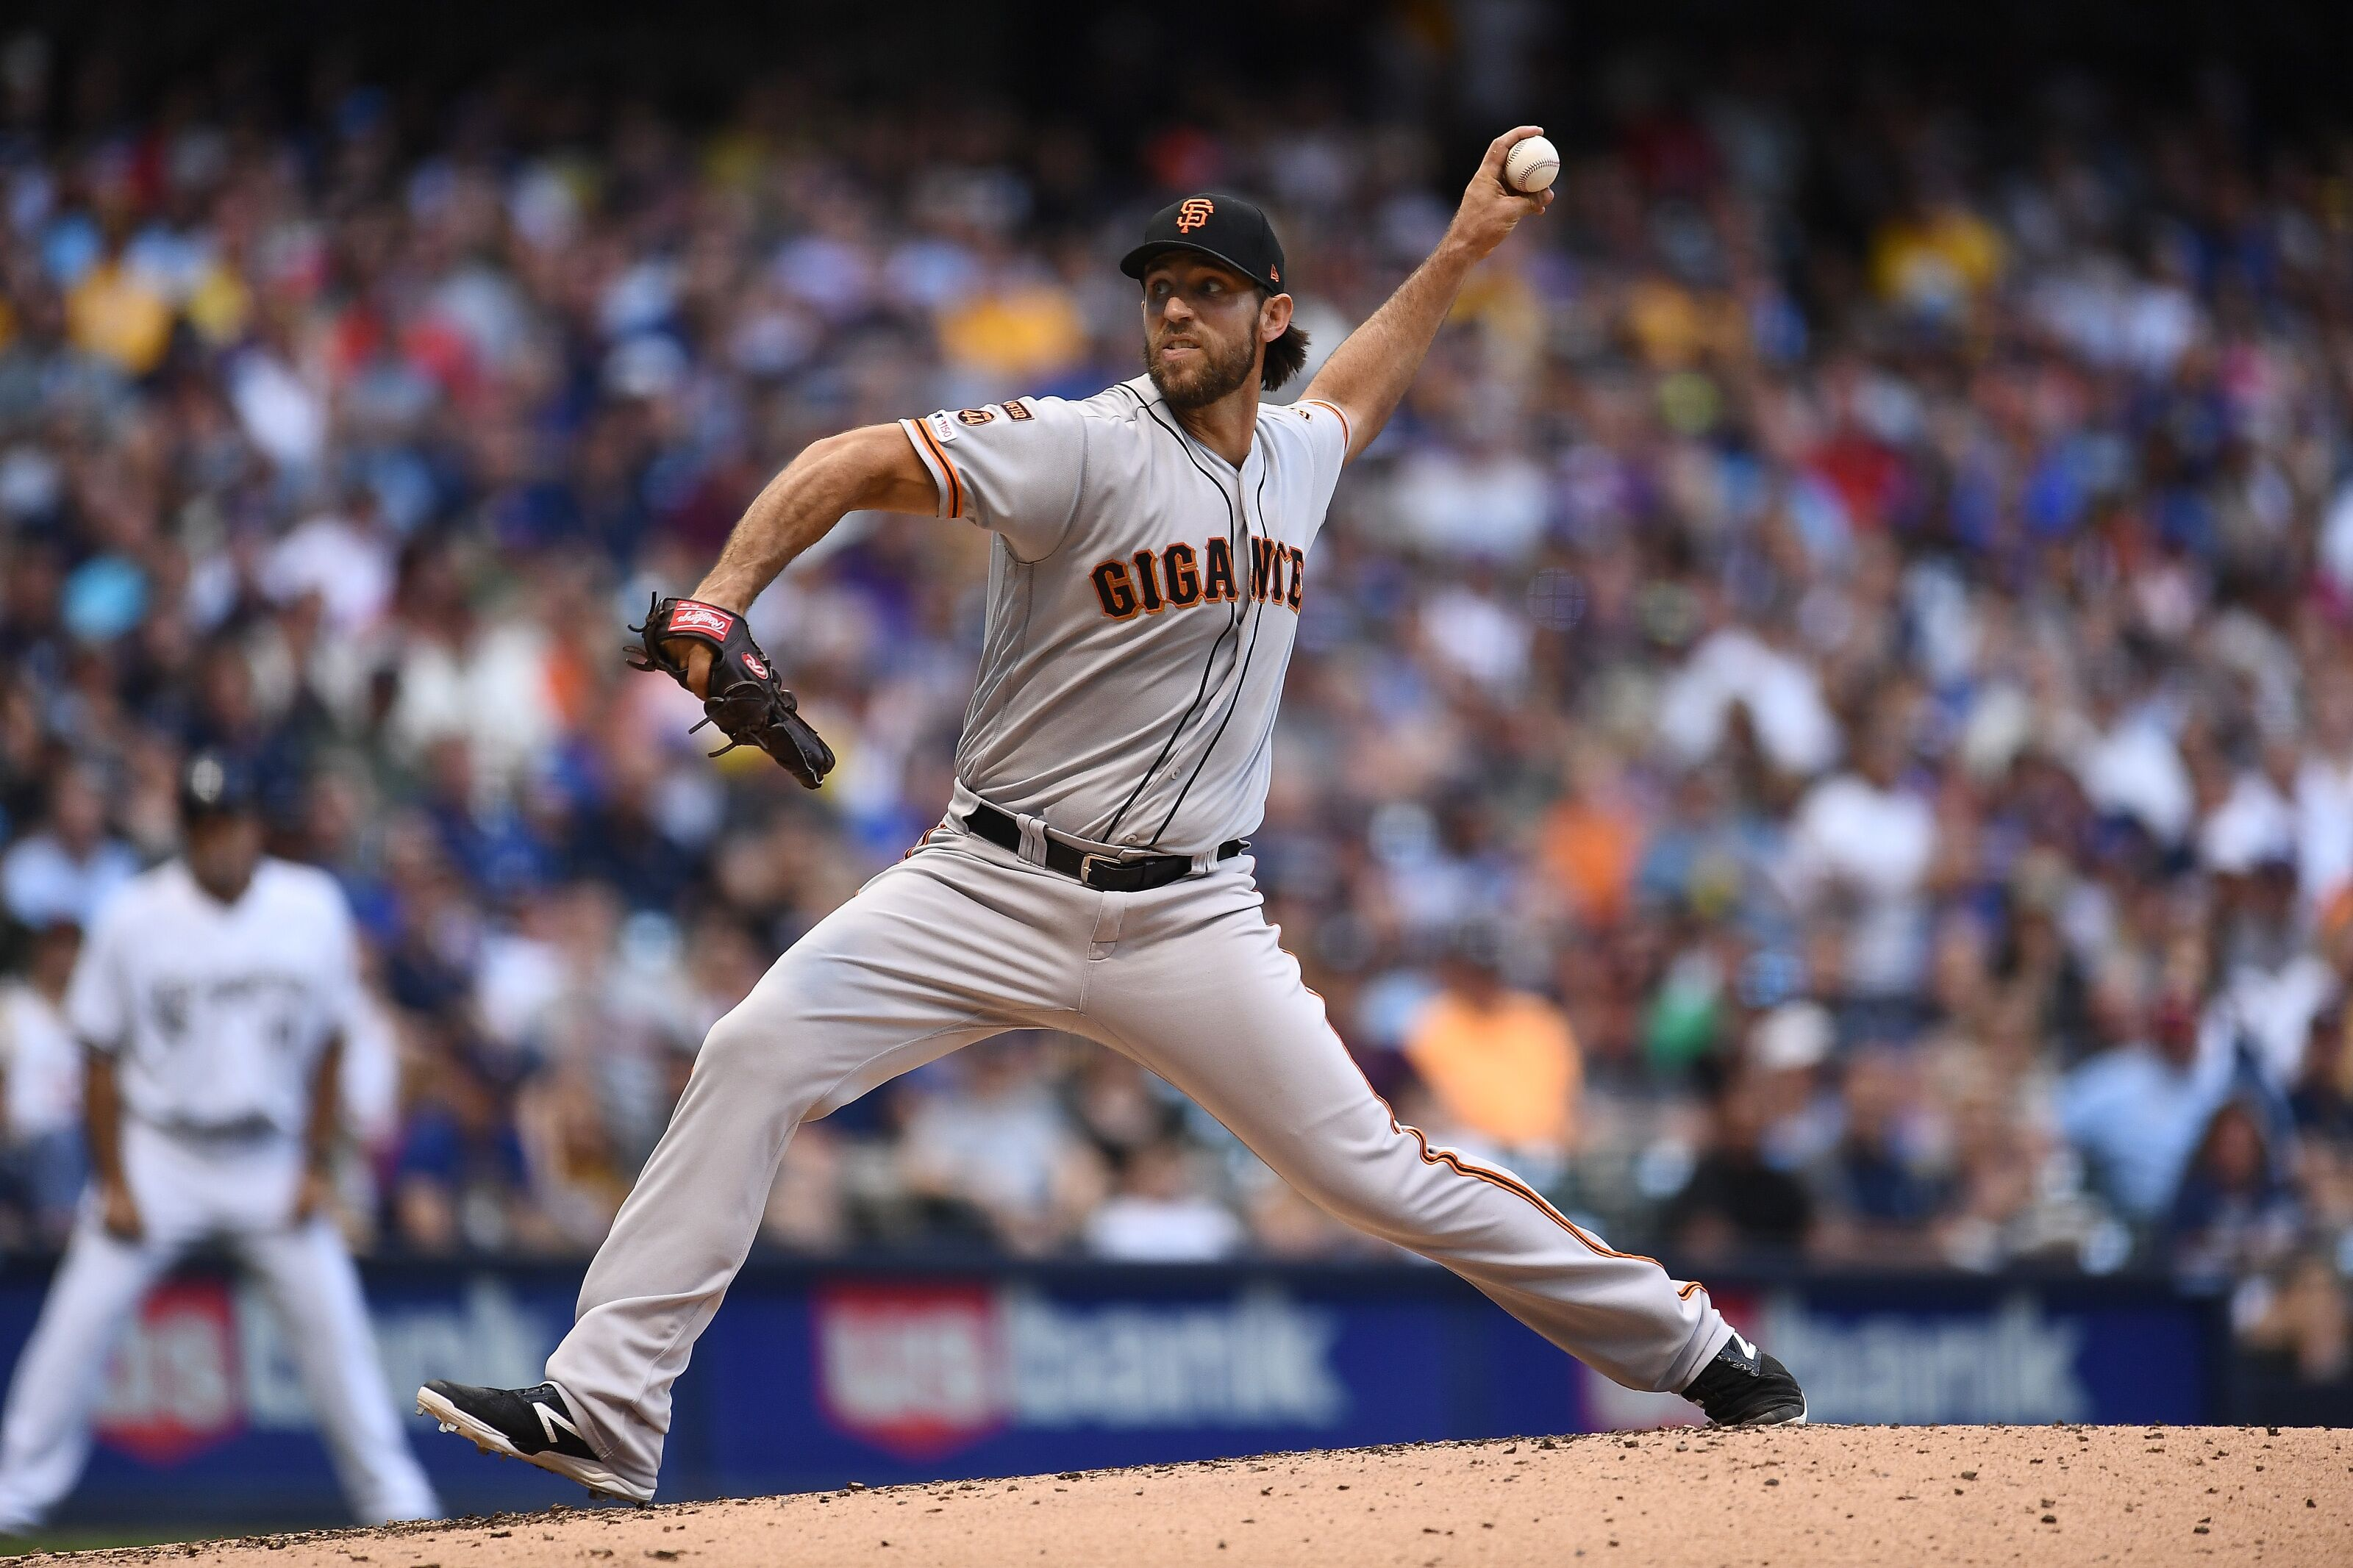 SF Giants: Recent Success Won't Affect a Madison Bumgarner Trade